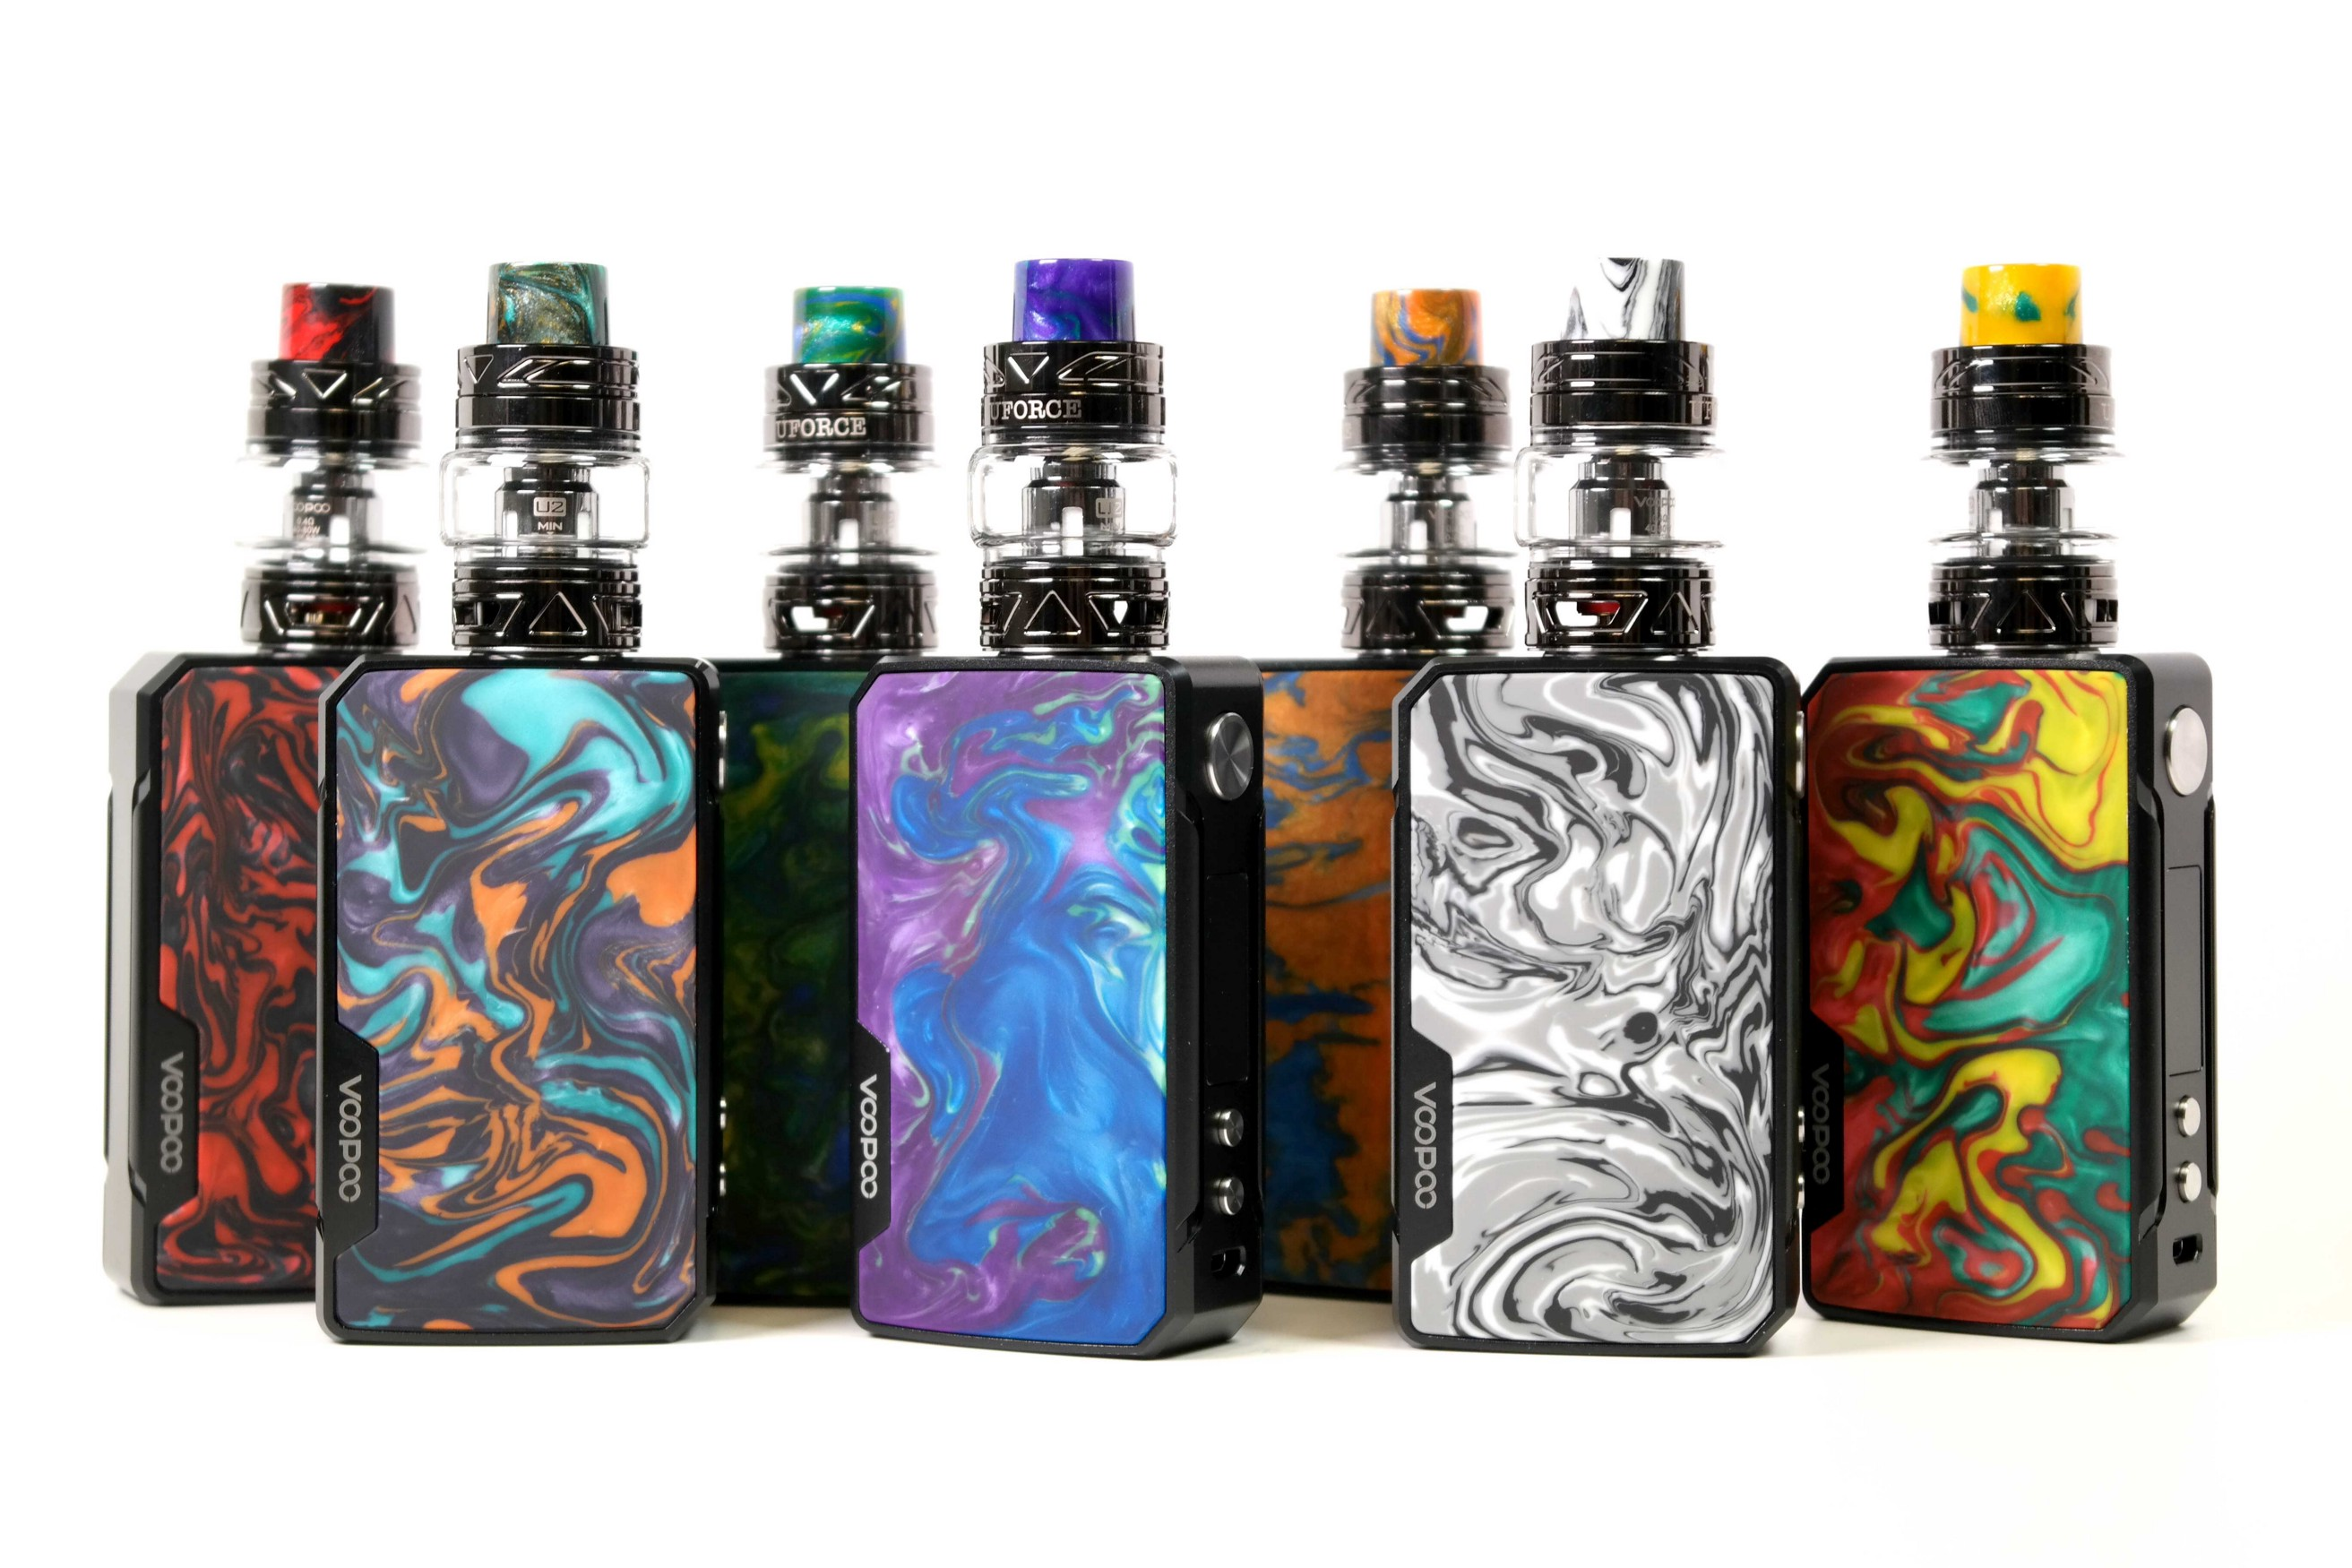 Voopoo Drag 2 Kit with Uforce T2 Review - Vapor Leaf (Vaporleaf